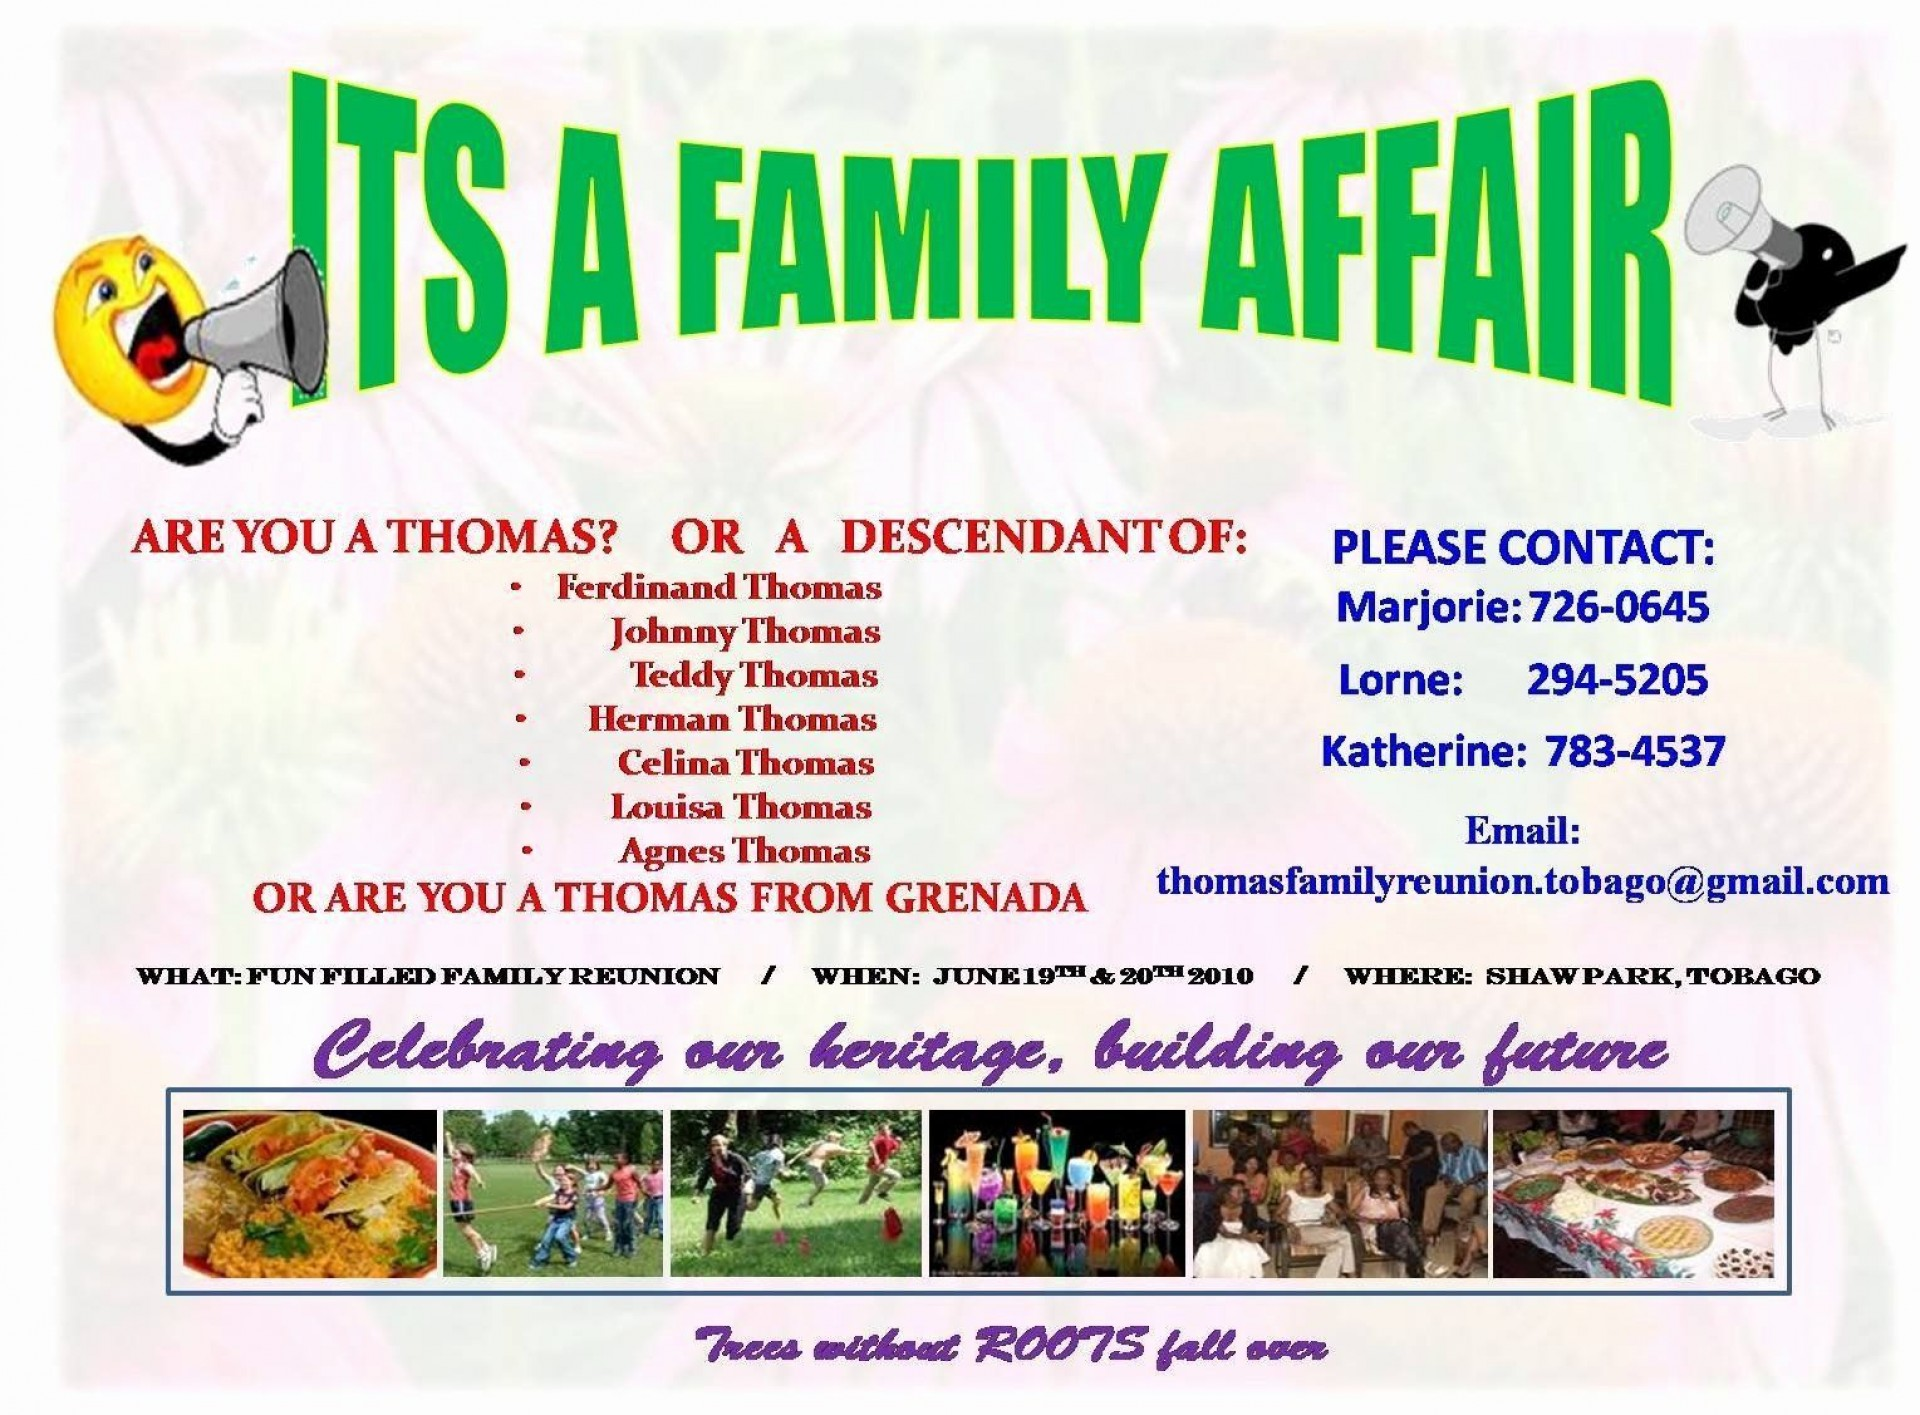 004 Simple Family Reunion Flyer Template Photo  Templates Free For1920